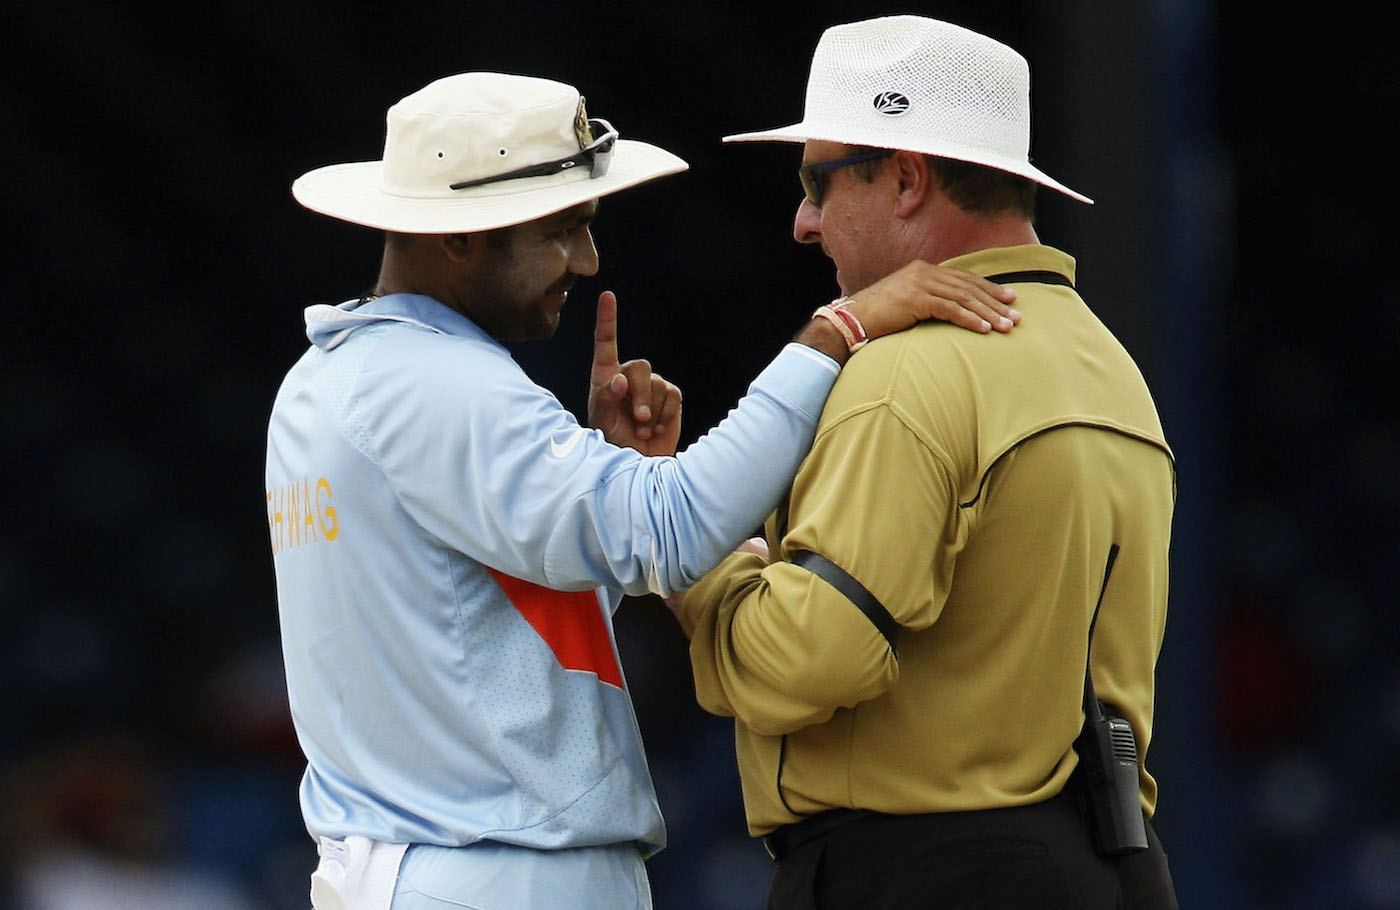 Oat couture: Virender Sehwag thinks that shirt on Ian Howell shouldn't be a-loud